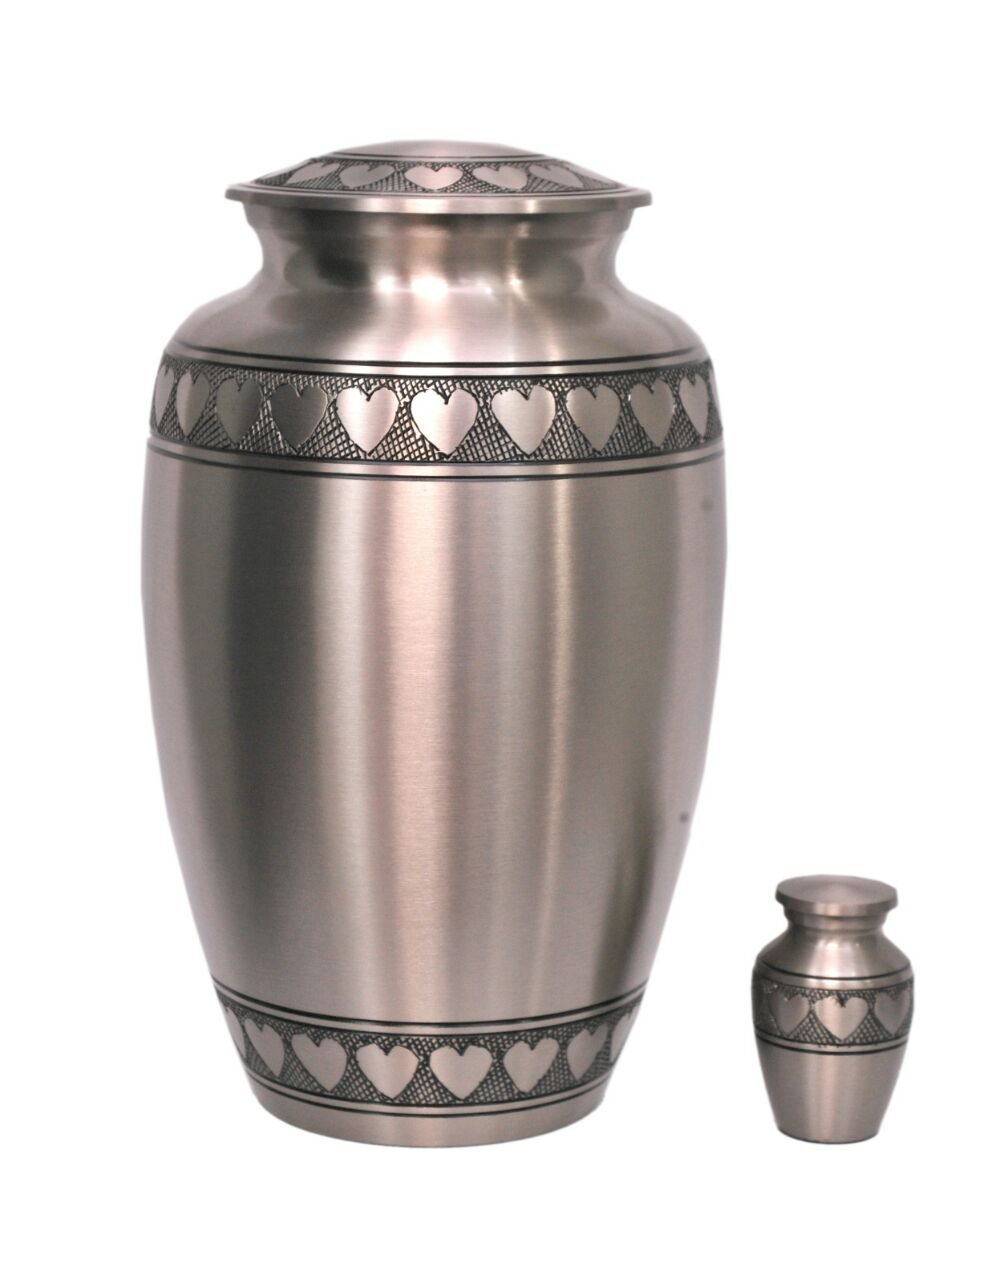 MEMORIALS 4U Classic Pewter with Heart Band Cremation Urn – 100 Handcrafted Large Pewter Heart Urn – Solid Brass Affordable Pewter Urn for Human Ashes – Adult Funeral Urn Deal with Free Keepsake